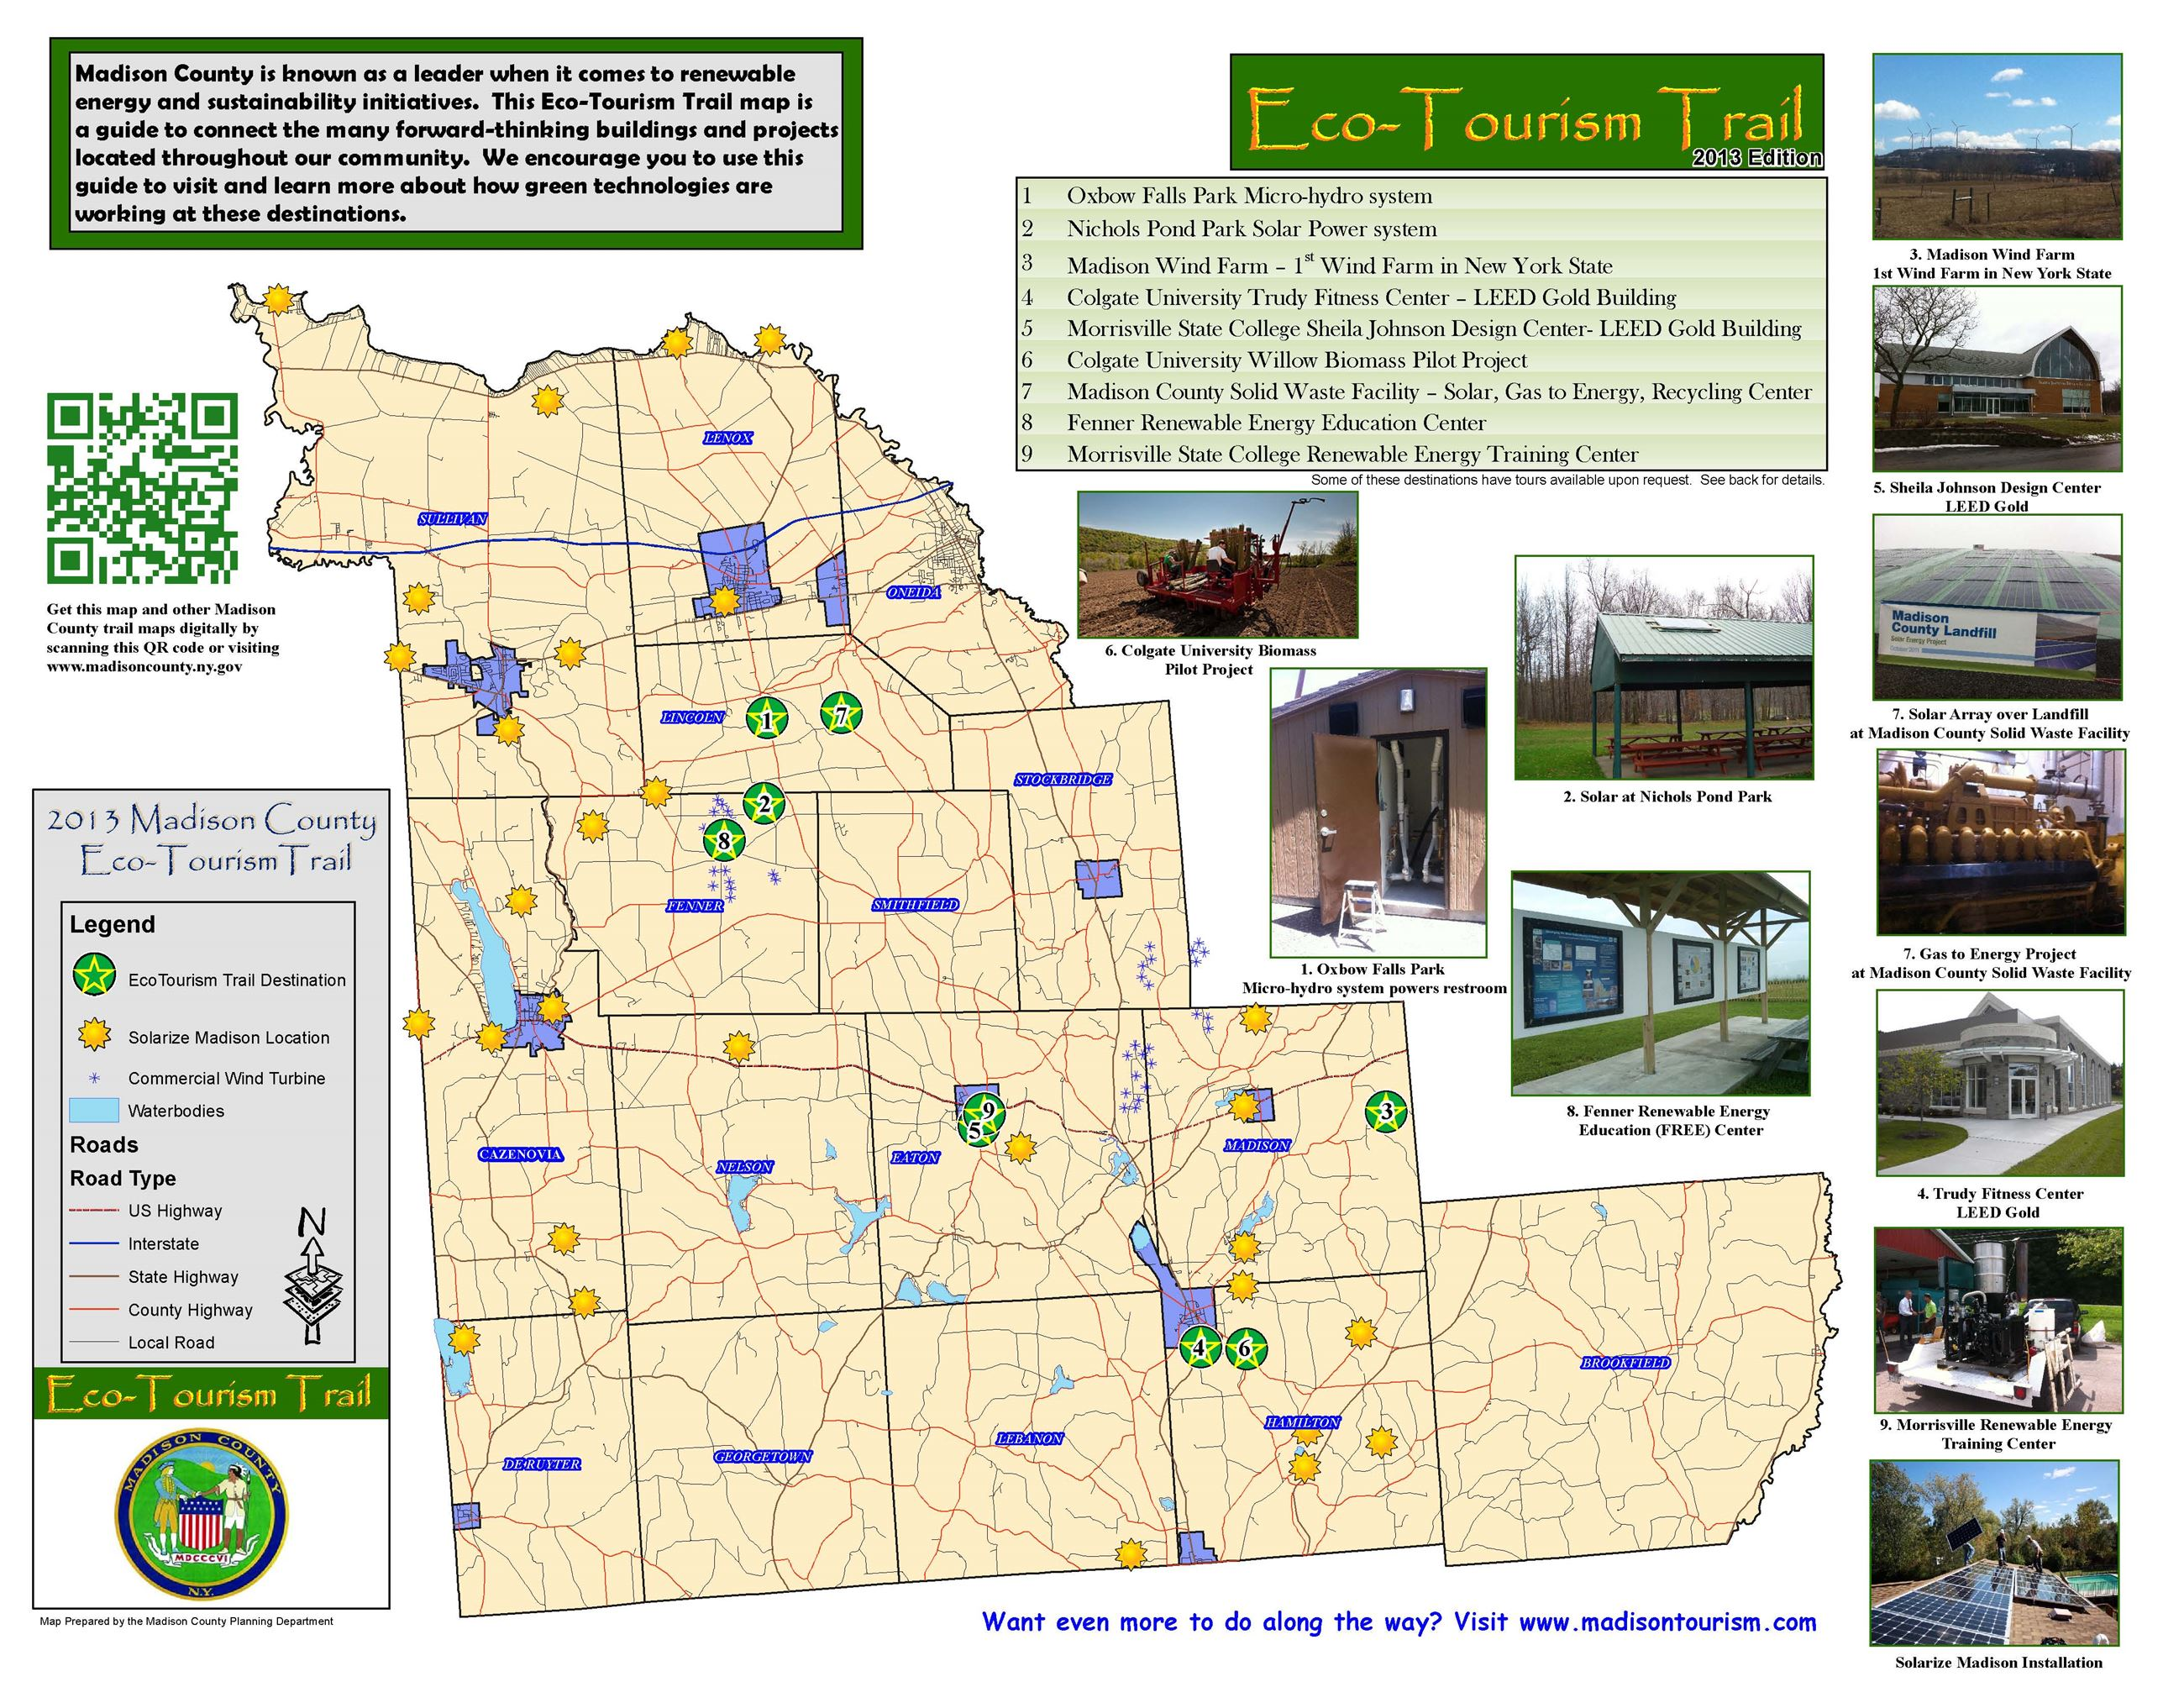 Madison County Eco-Tourism Trail Map